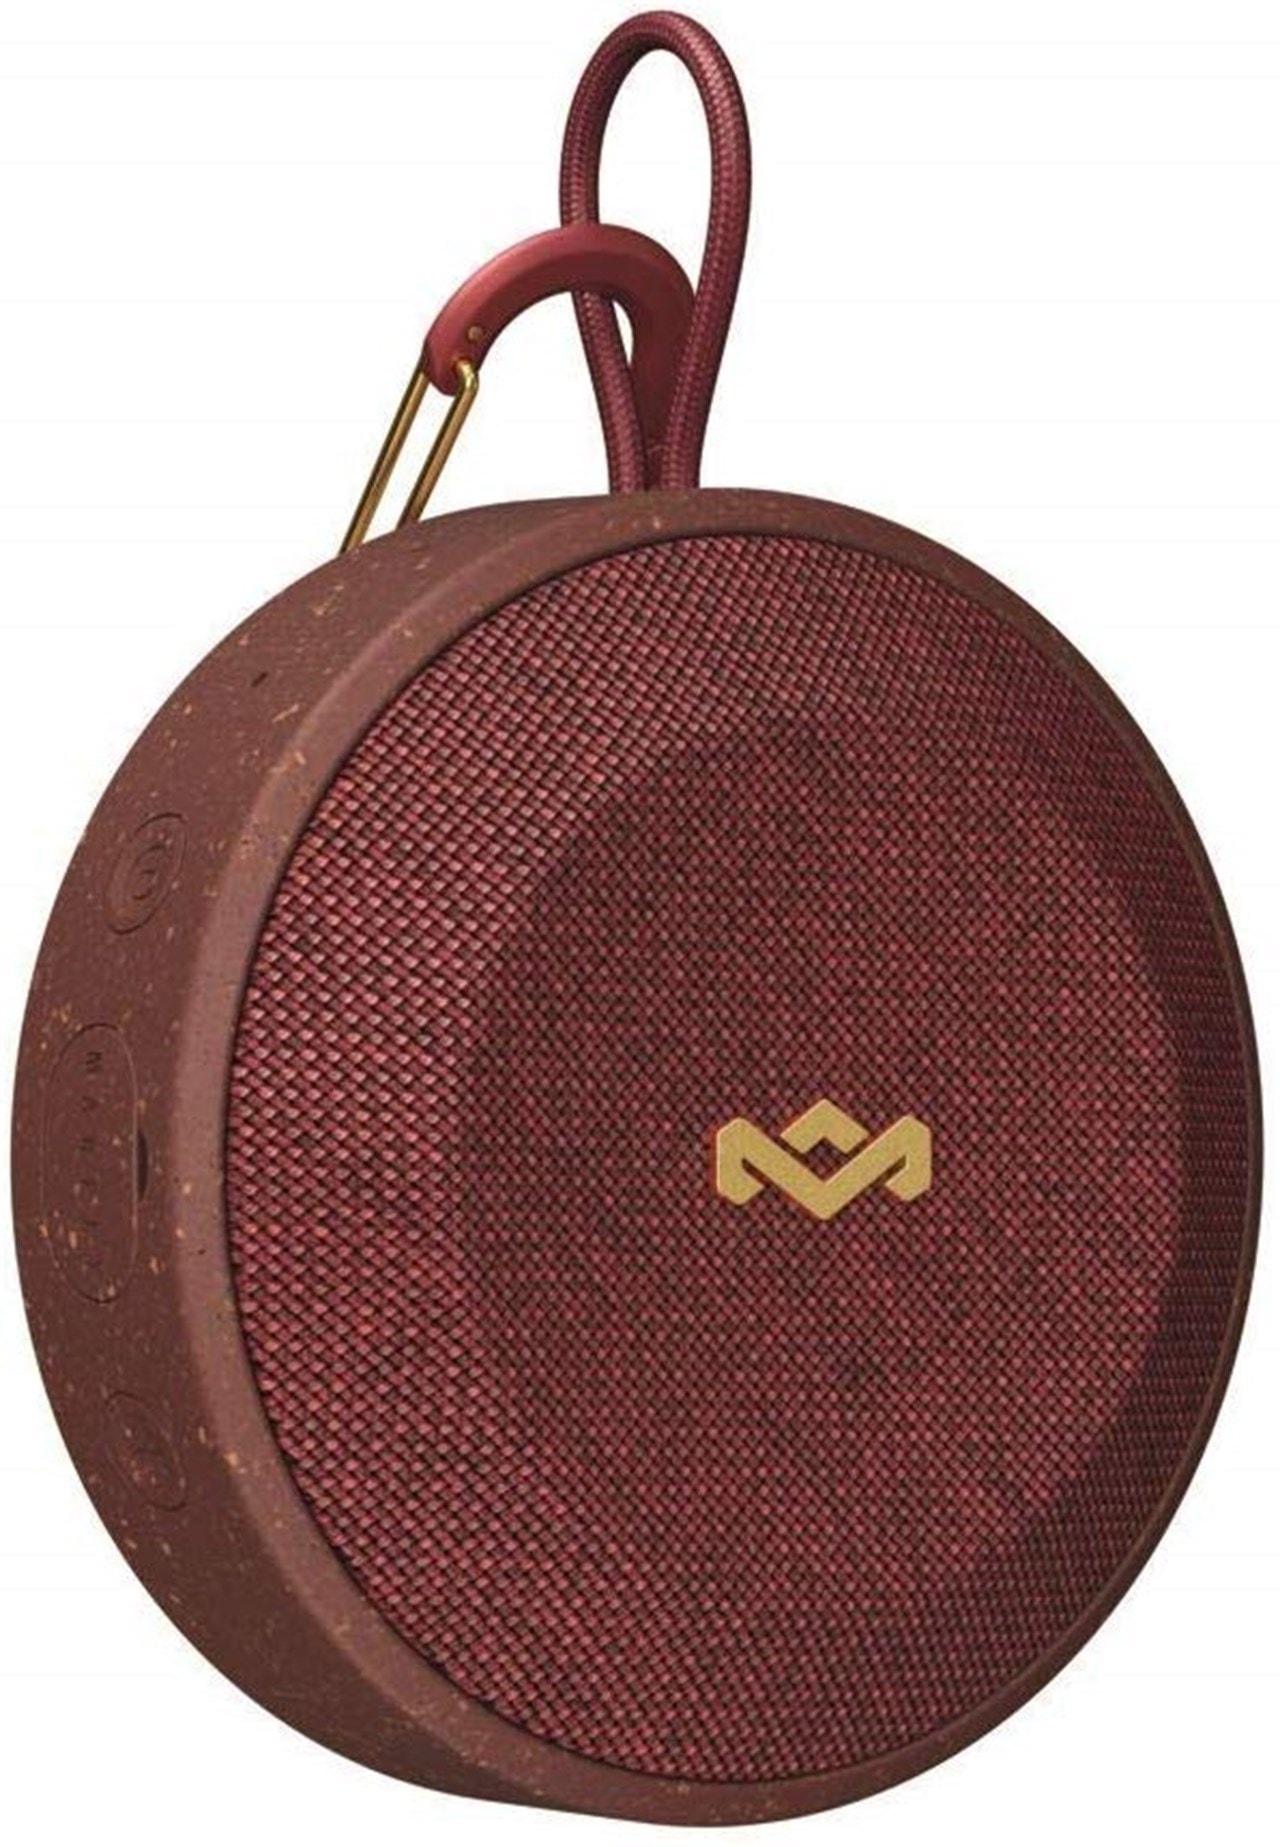 House Of Marley No Bounds Red Bluetooth Speaker - 1